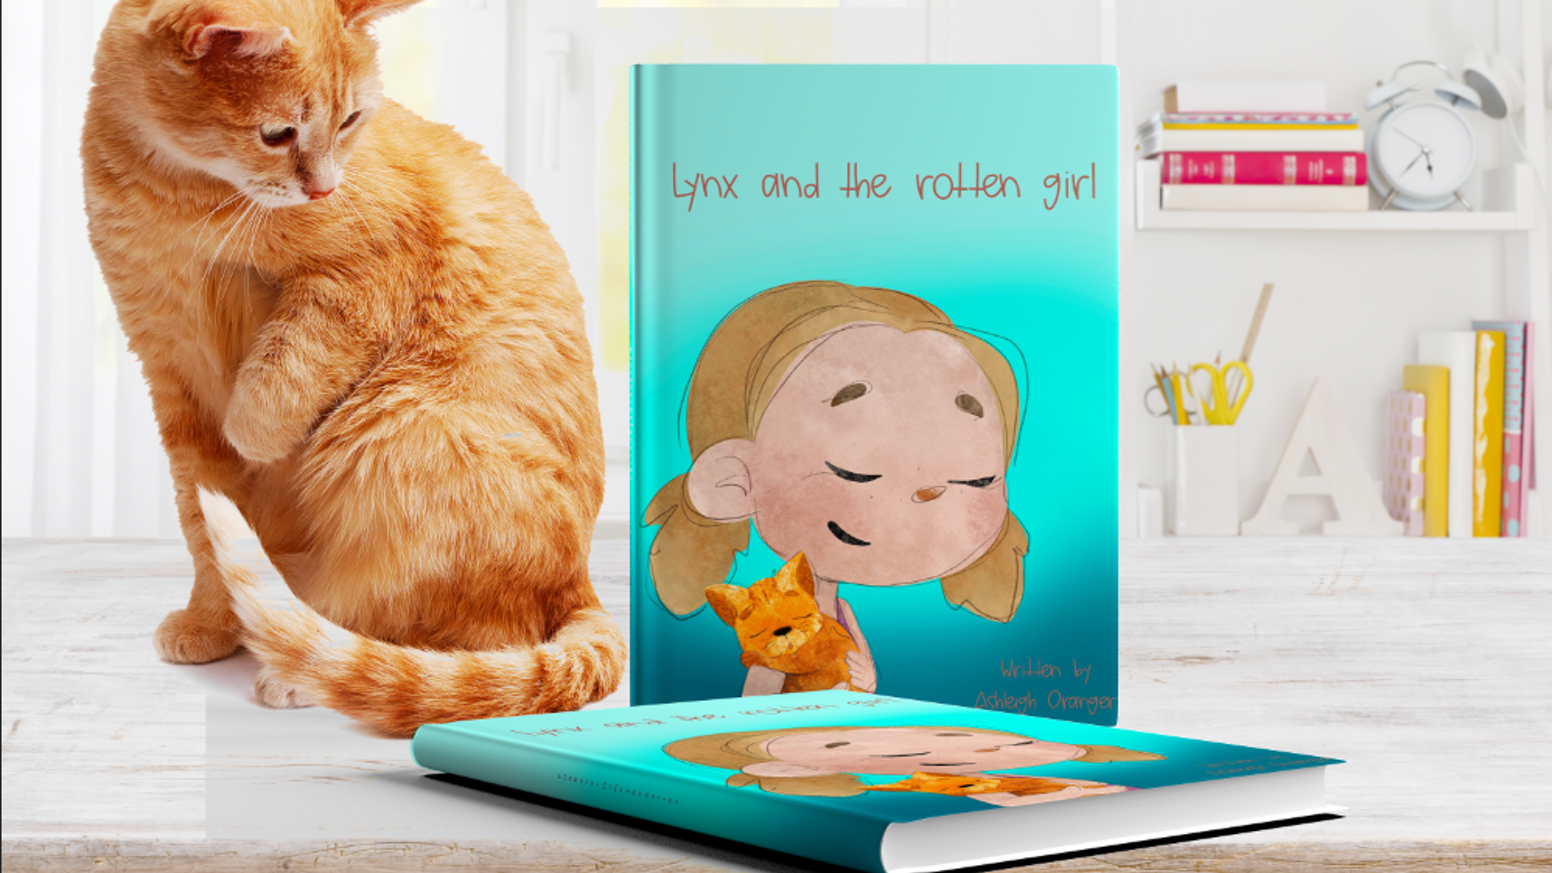 Lynx and the Rotten Girl is the debut book in a children's series about real life rescued cats, told from the cat's perspective.